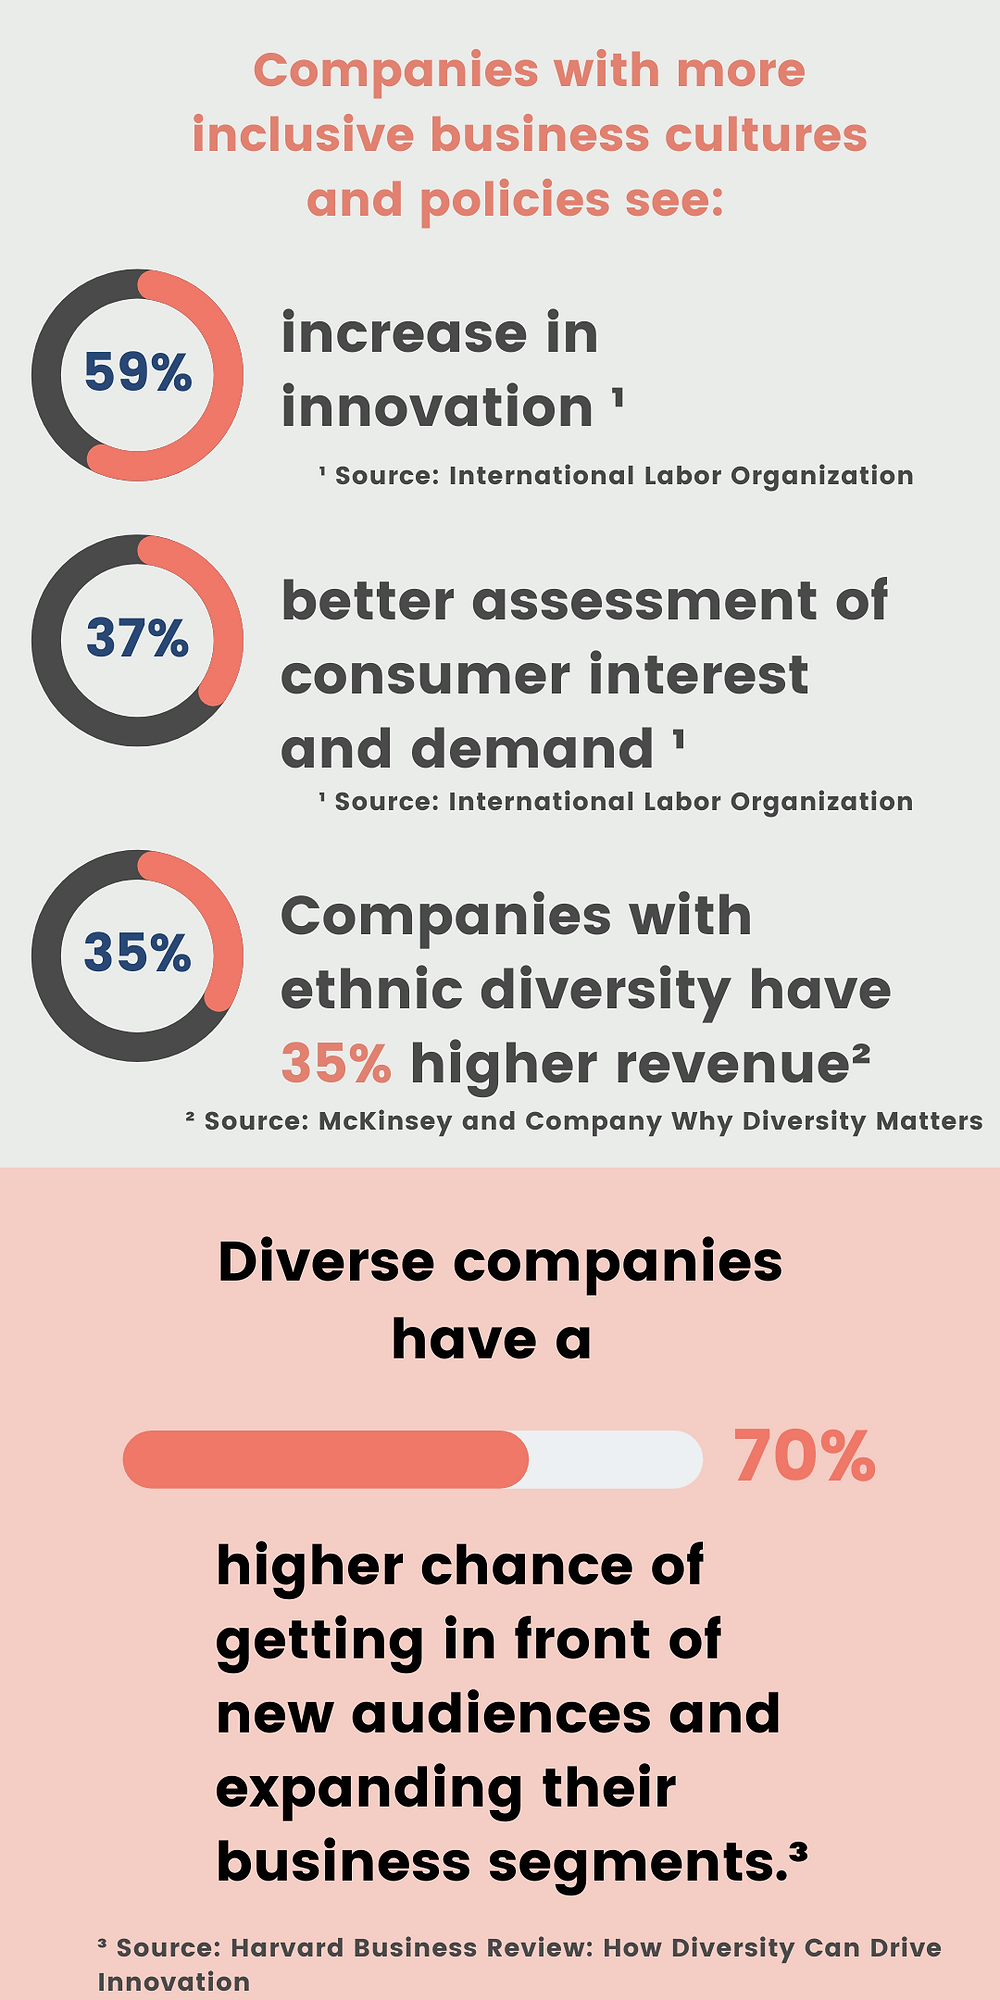 Companies with diversity and inclusivity practices benefit from an increase in innovation, revenue, and access to new audiences.